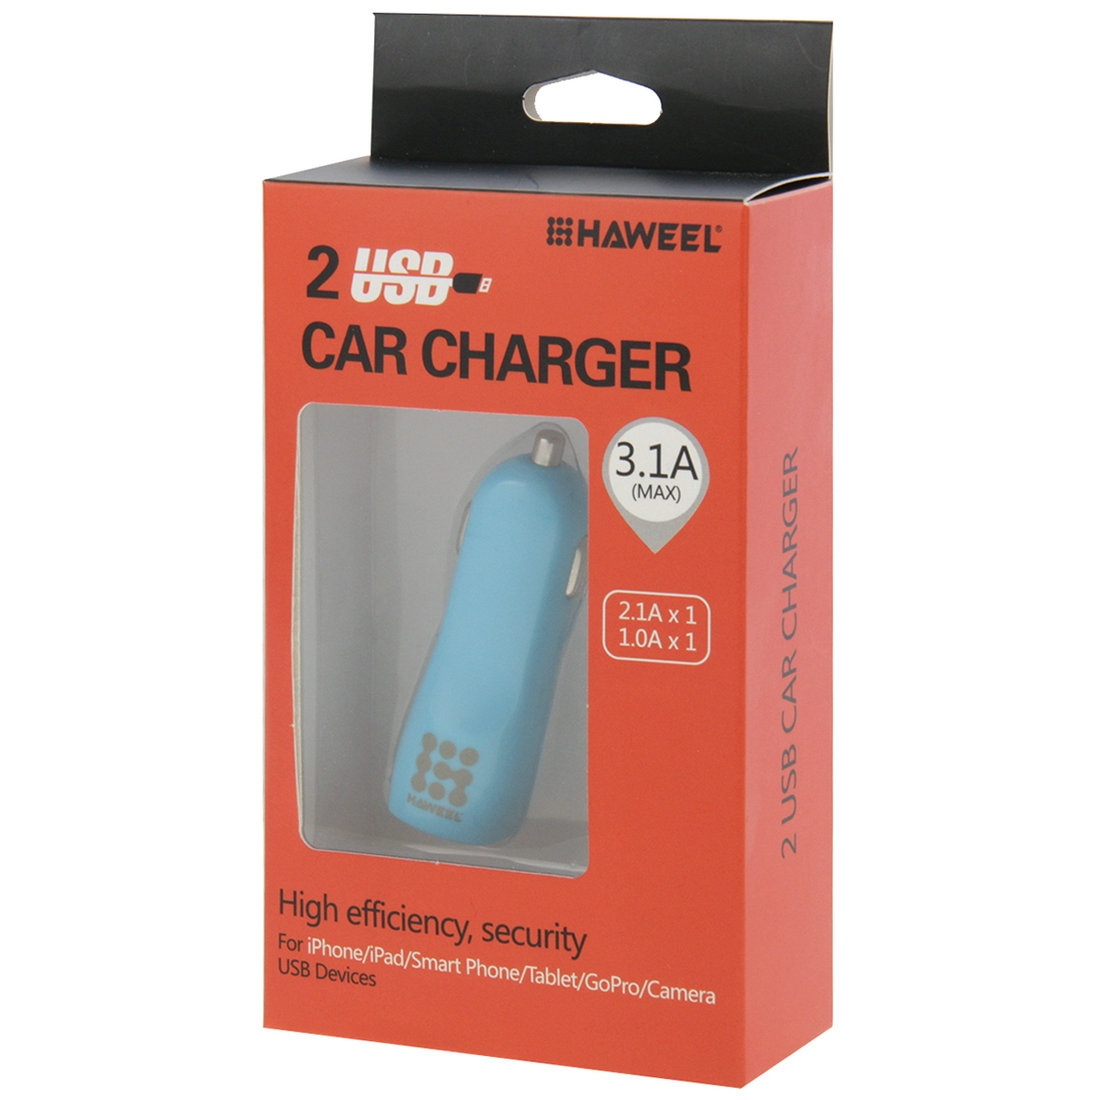 chargeur iphone voiture leclerc